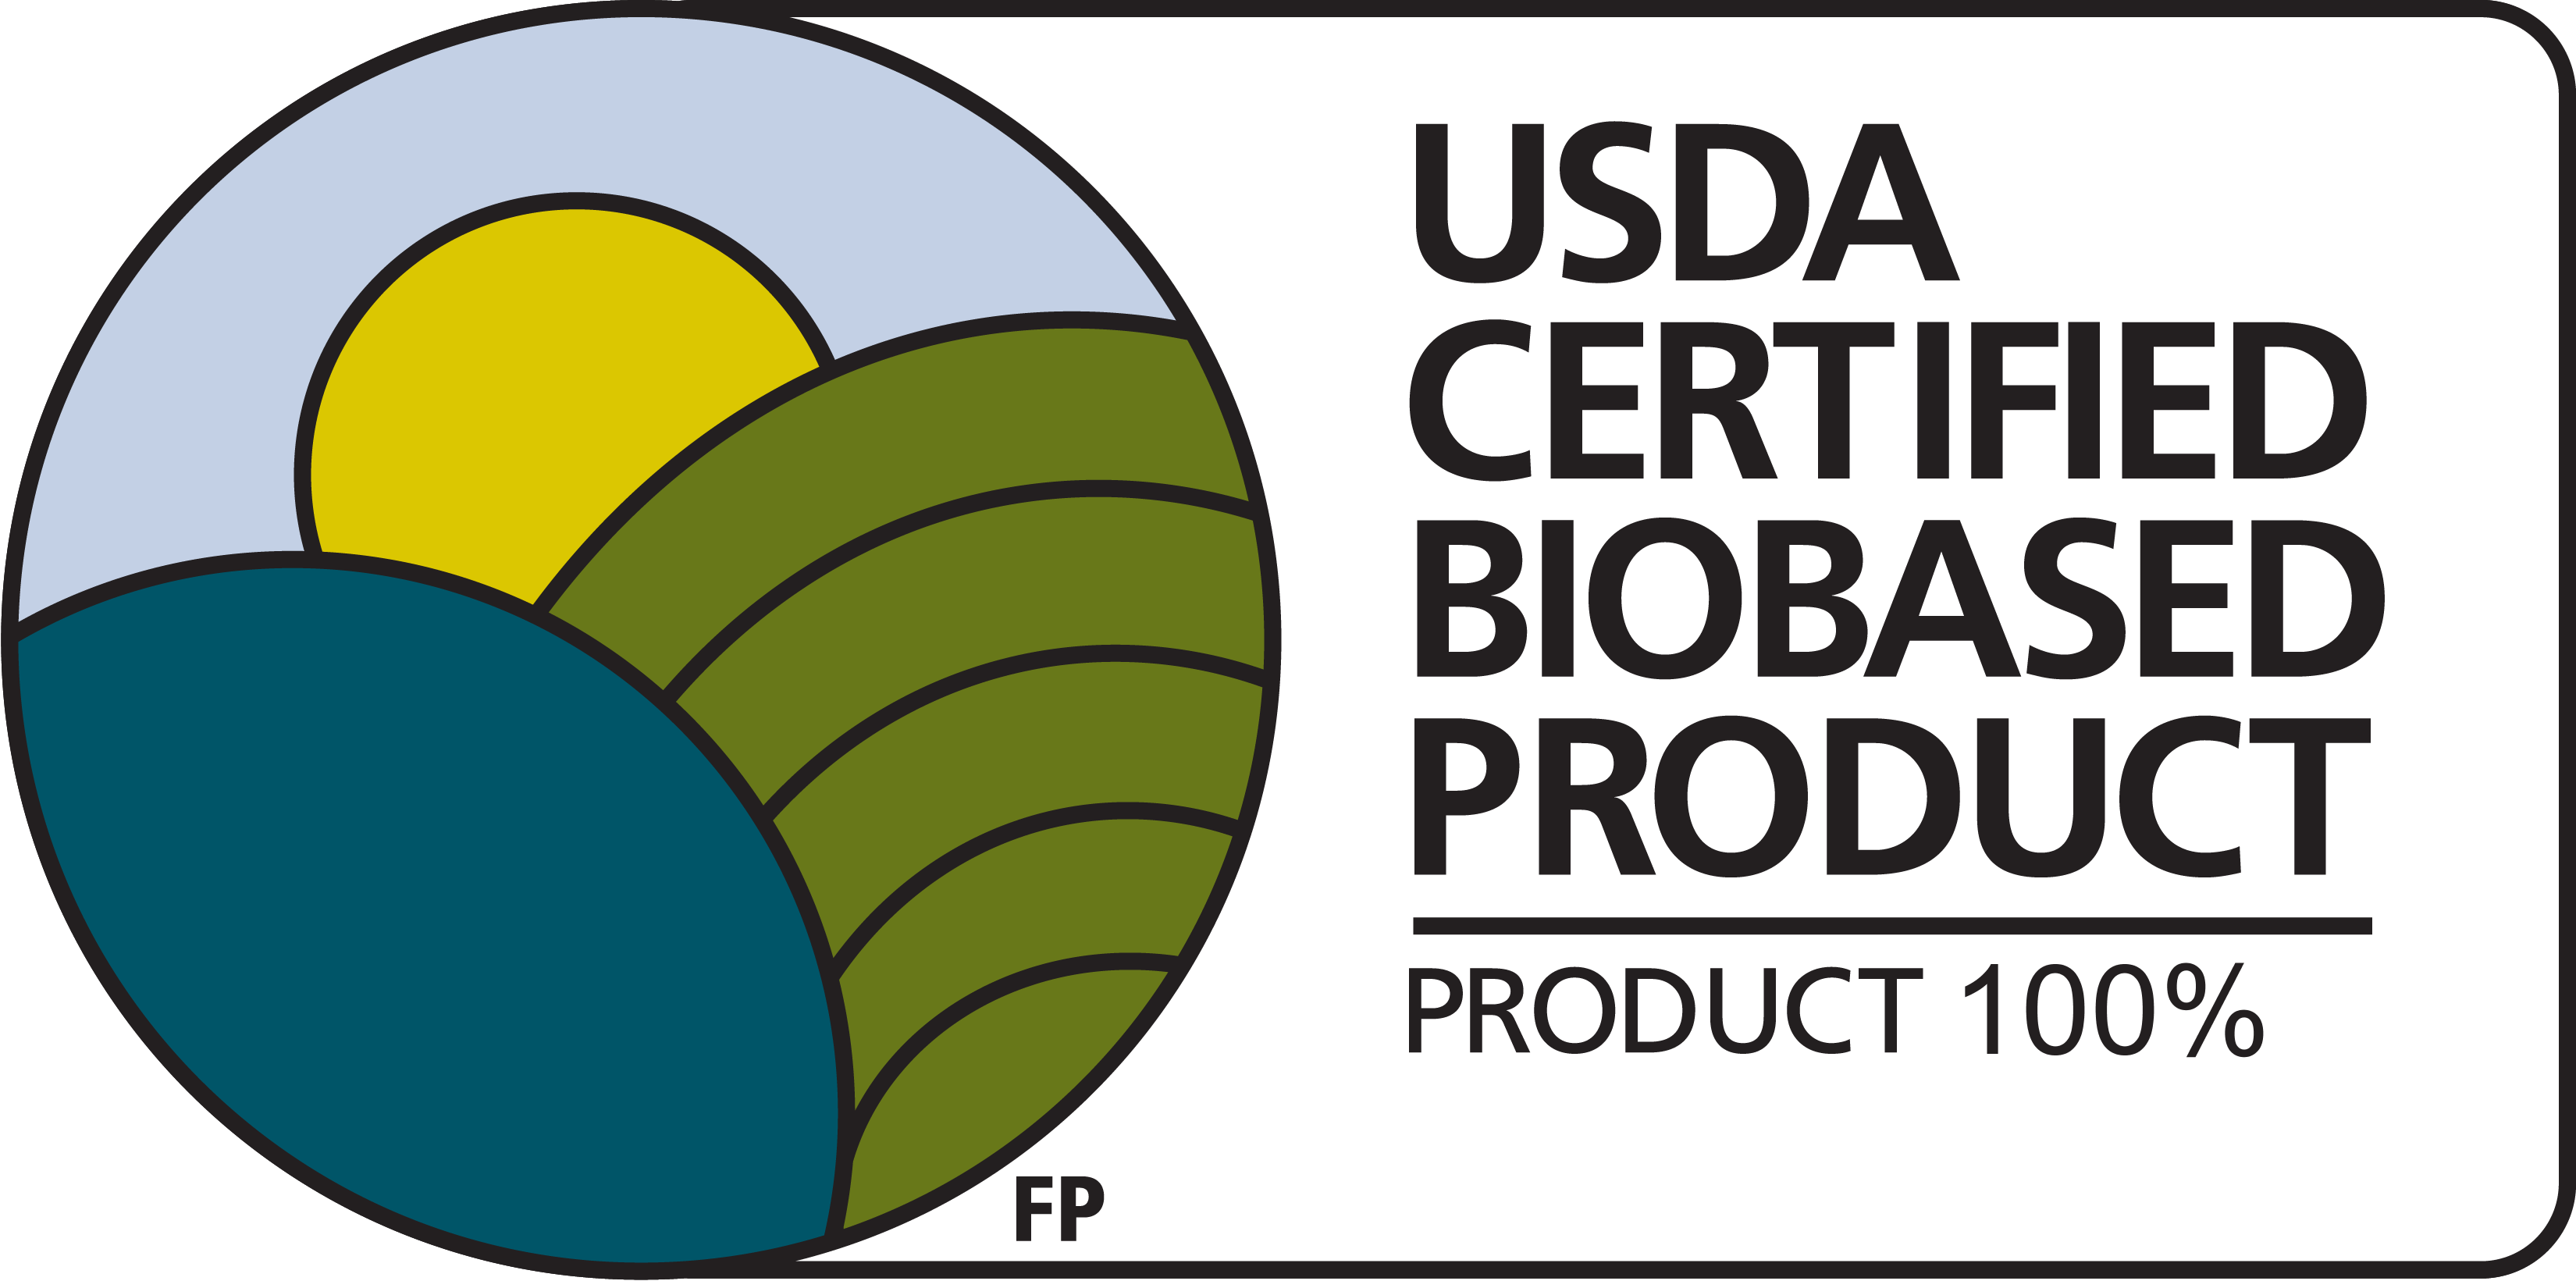 Honest Glow On Body Oil is a USDA Certified Biobased Product Label shown